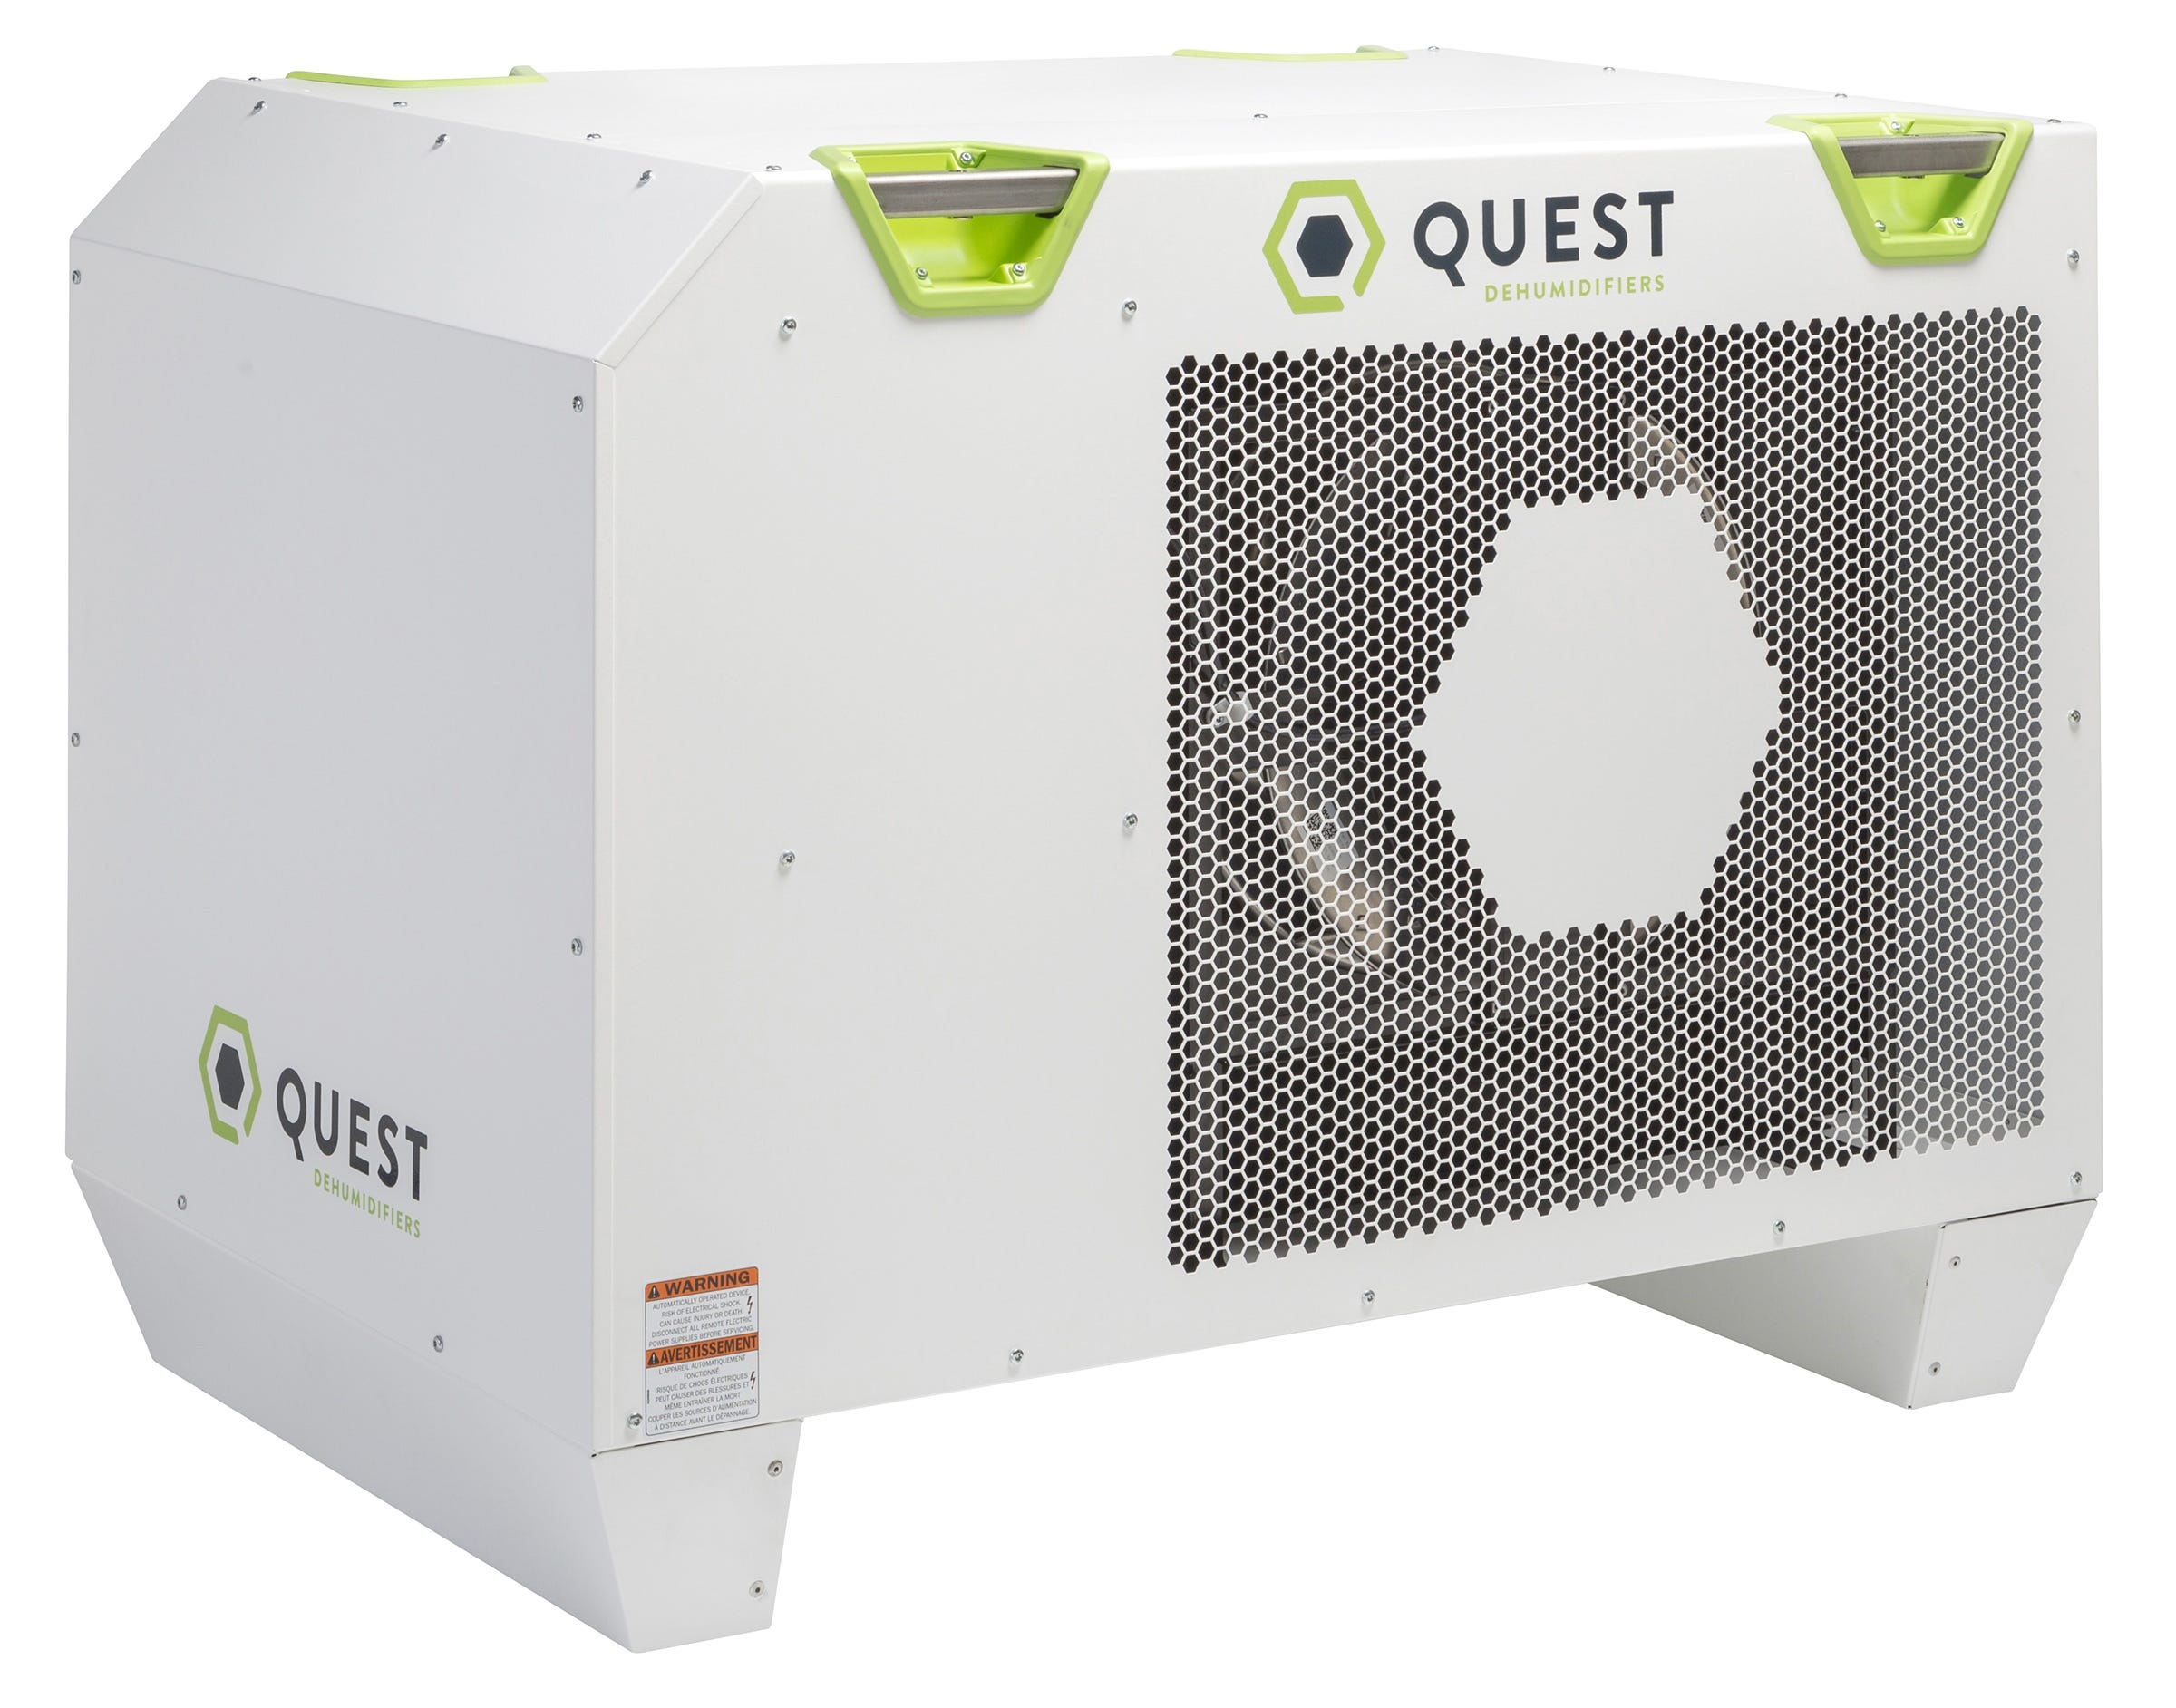 Quest 506 Commercial Dehumidifer 500 Pint Quest 506 Commercial Dehumidifer 500 Pint The Quest 506 is the first 500 pint, 230 volt 1 phase, commercial dehumidifier designed for commercial growing at scale. Like all Quest products it can be placed at ground level for immediate operation or hung overhead and out of the way. The Quest 506 Commercial Dehumidifer is the most energy efficient high capacity dehumidifier. It uses only 11 amps while running at a maximum efficiency of 8.1 pints/kWh. It is made in the USA. This model comes standard with MERV-11 filtration. The filtration can capture particles (including mold spores) down to 1 micron in size. An additional Humidistat is required, we recommend the DEH 3000R Wall Mounted unit part #700833. There is a 1 year parts and labor warranty and a 5 year compressor and refrigerant system warranty. Quest 506 Features: Industry-leading efficiency, most efficient on the market today Patented, refrigeration system High-efficiency, long-life impeller fan Quiet operation Superior air filtration (MERV-13 standard) Auto-restart after power outages Environmentally friendly R410A refrigerant Low voltage control Quest 506 Dehumidifier Specifications: Power (Watts): 2700 Supply voltage: 220-240 VAC - 1 Phase - 60 Hz. Current Draw (Amps): 11.0 Rated Current Draw (Amps): (104°F 36%) 13.6 Energy Factor (L/kWh): 3.8 Operating Temp: 56°F Min - 95°F Max Water Removal (Pints/Day): 506 Efficiency (Pints/kWh): 8.1 Air Filter (MERV-13): (2) Size: 18  x 20  x 2  Power Cord: 14ga 10', NEMA 6-20P Drain Connection: 3/4 Threaded NPT Refrigerant Type: R410A Refrigerant Amount: 4lb. 8oz. Unit Dimentions: 45  x 29  x 34